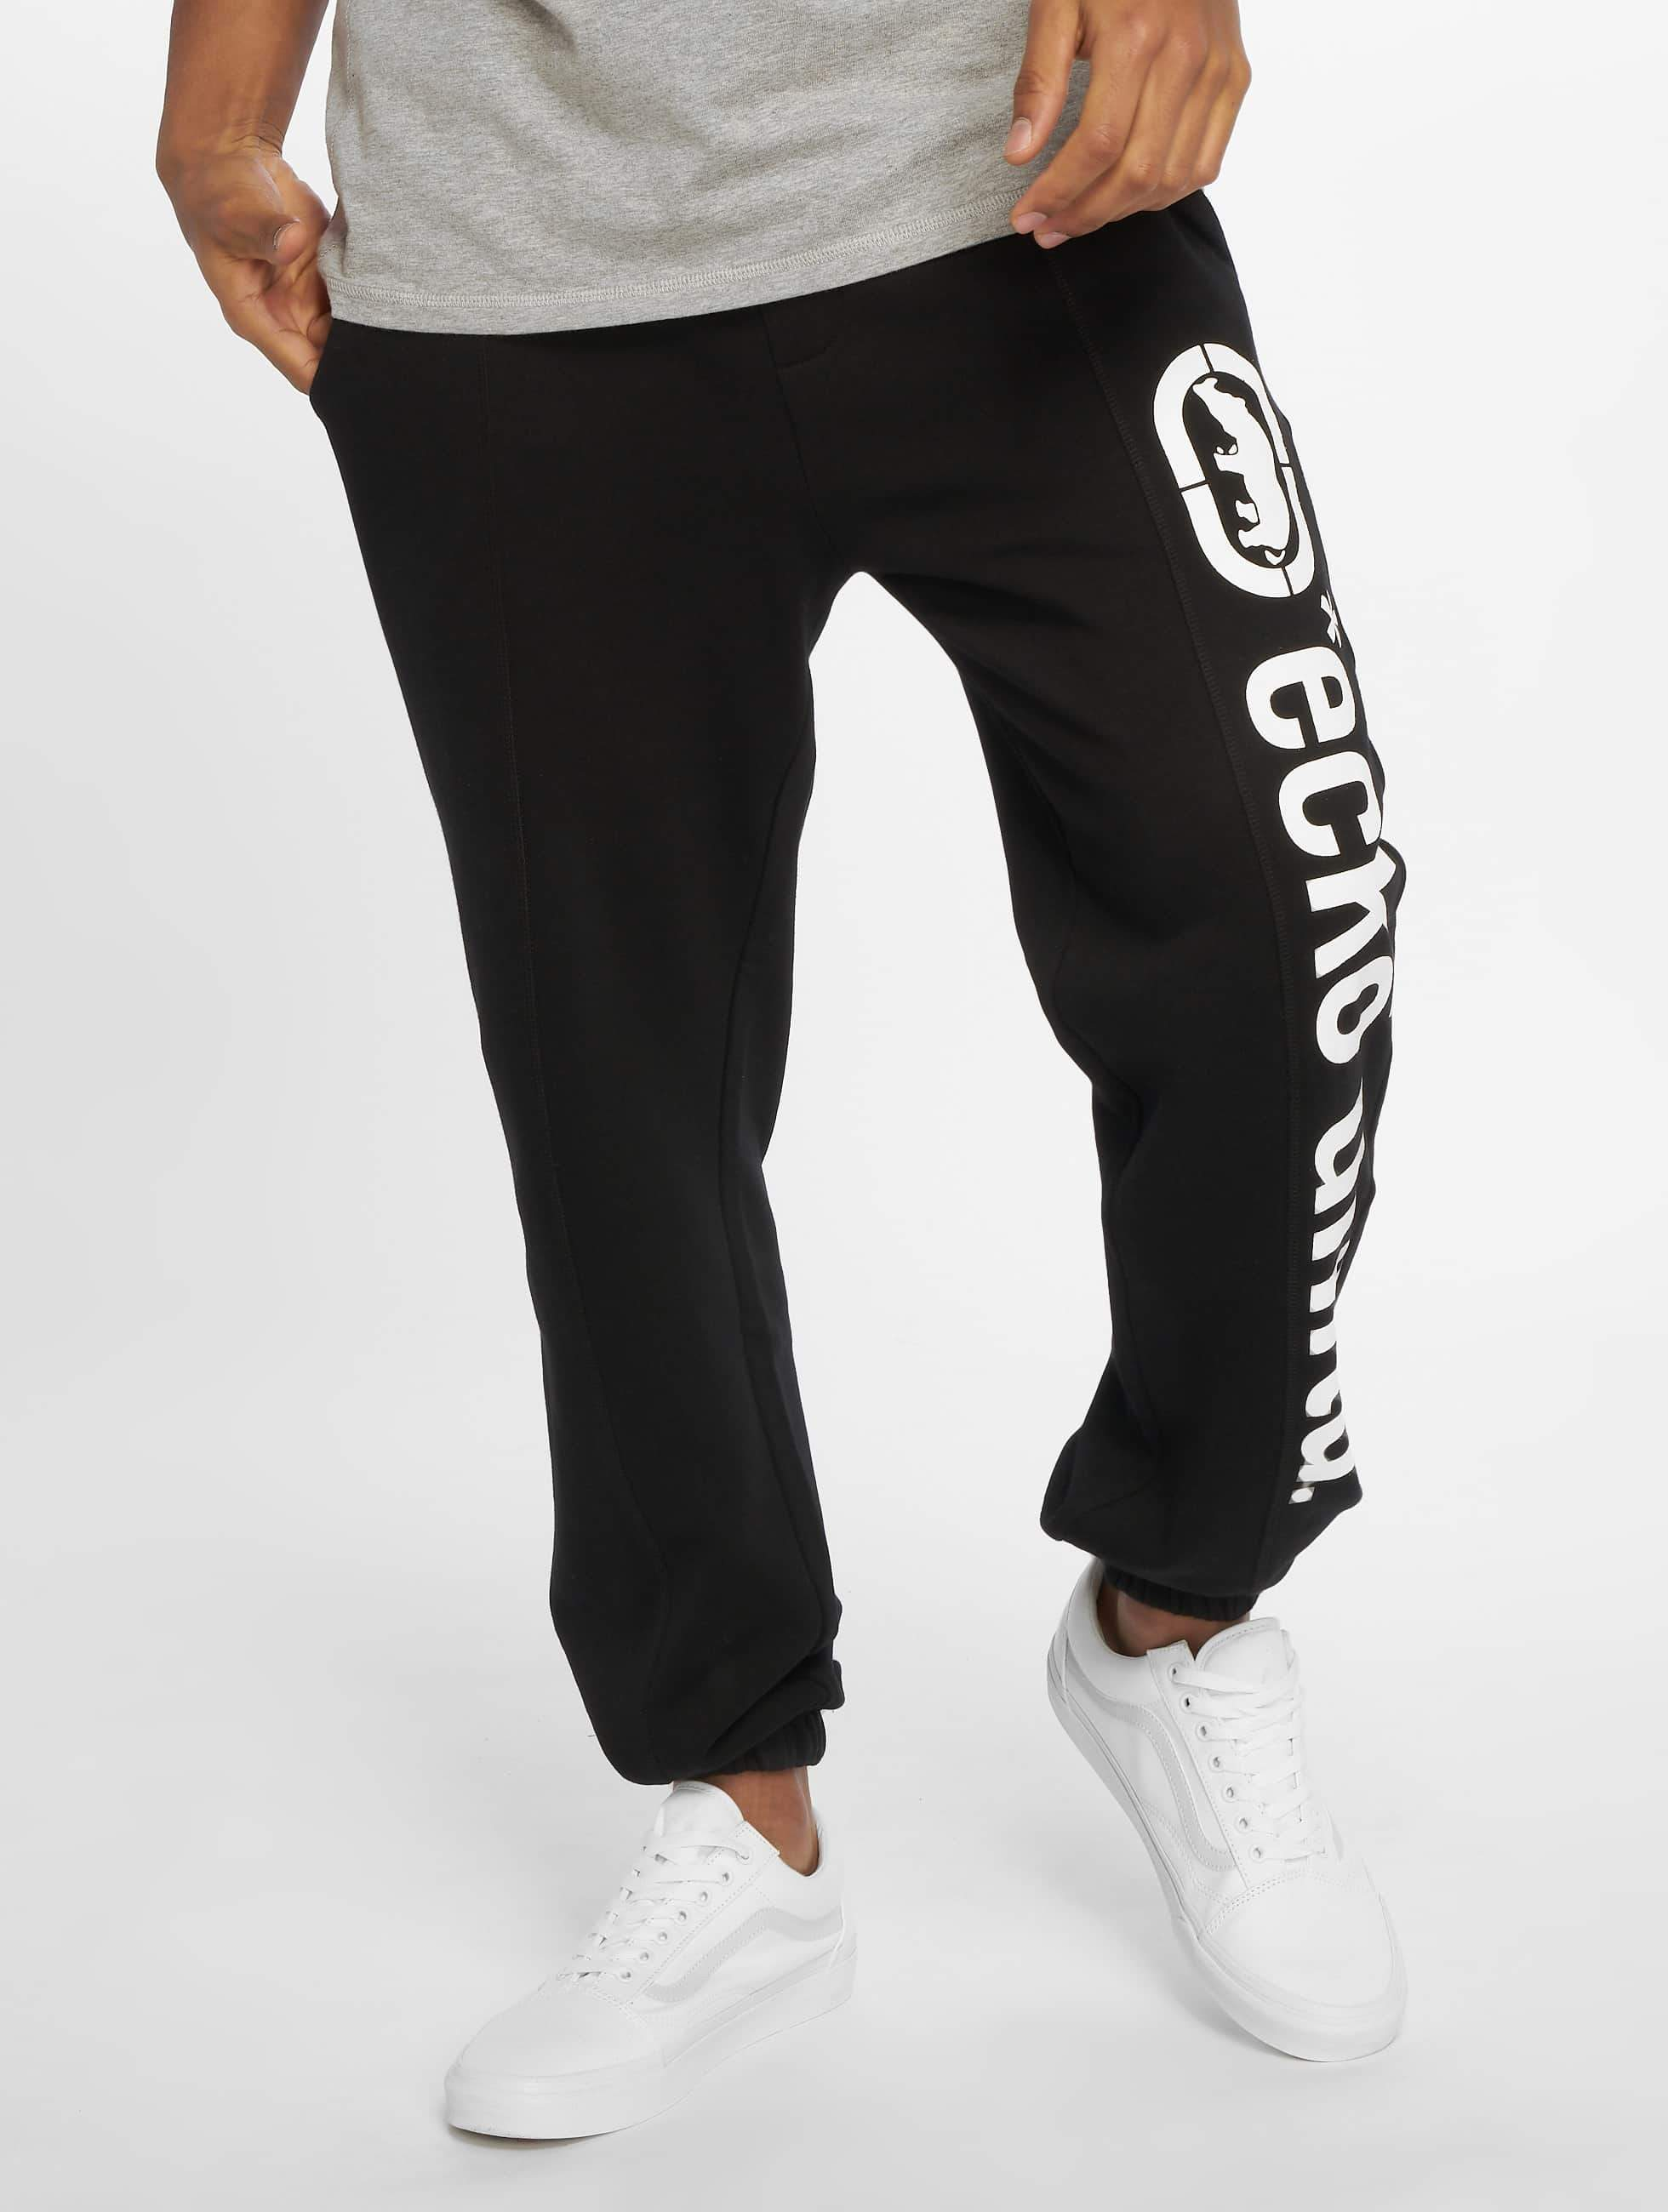 Ecko Unltd. / Sweat Pant West Buddy in black XL